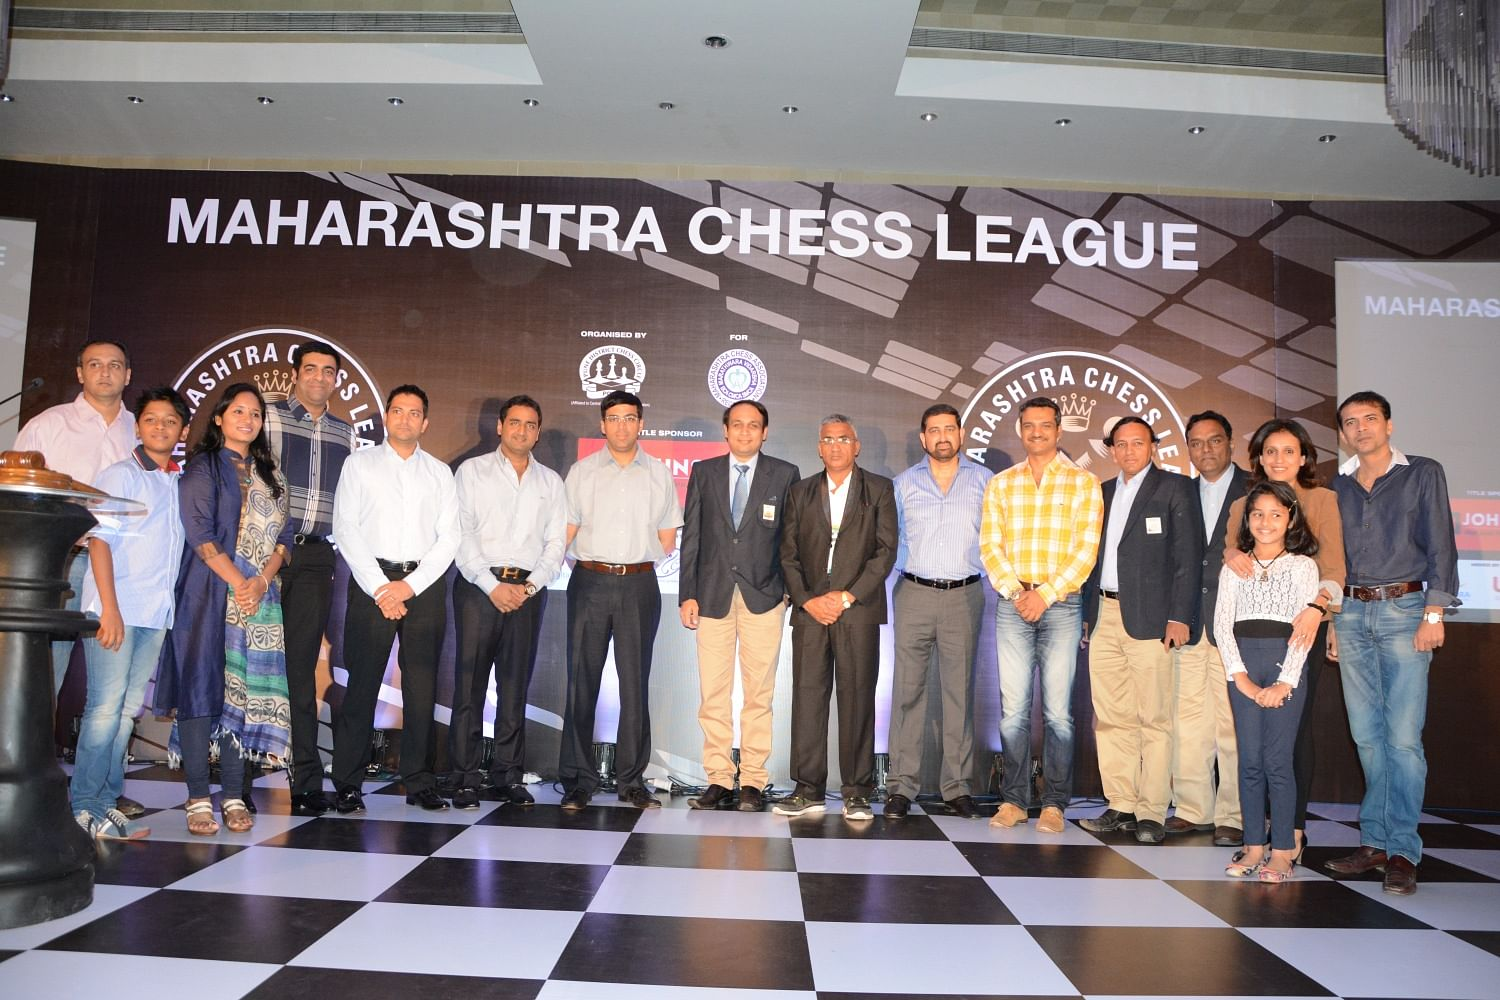 Abhijit Kunte, Vidit Gujarathi richest picks in 2nd Maharashtra Chess League